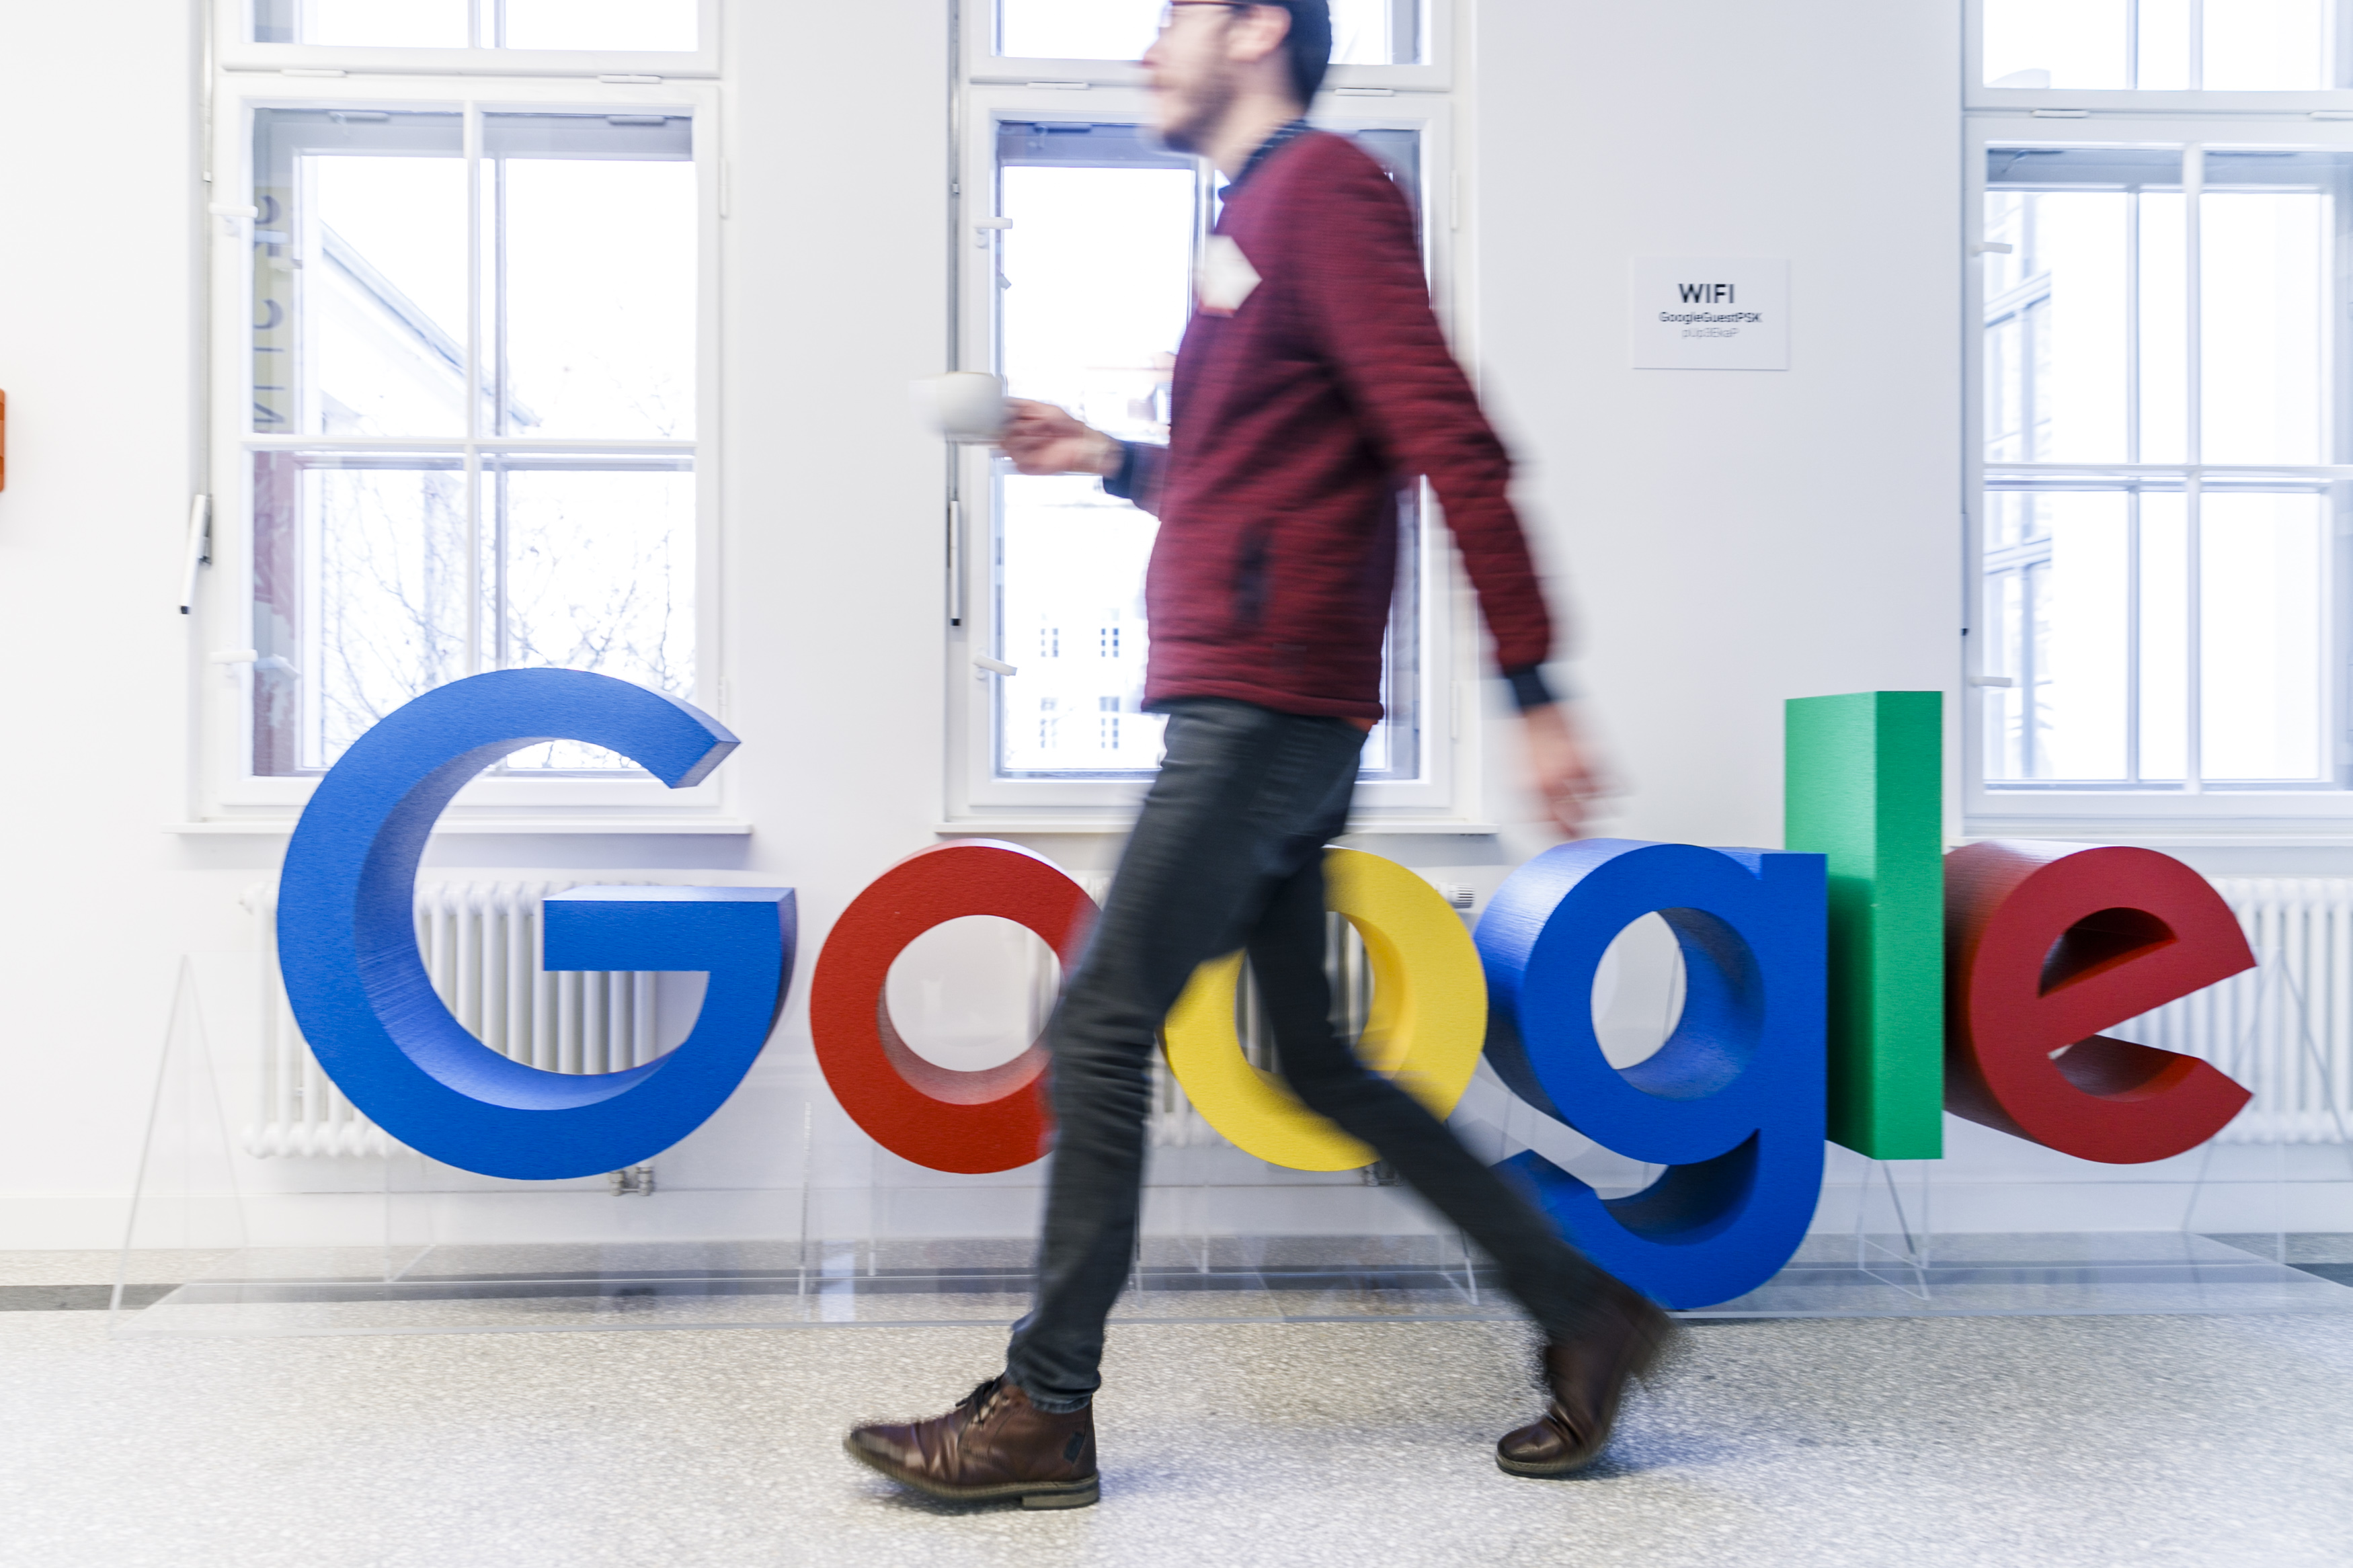 Google disbands AI ethics board after one week of existence